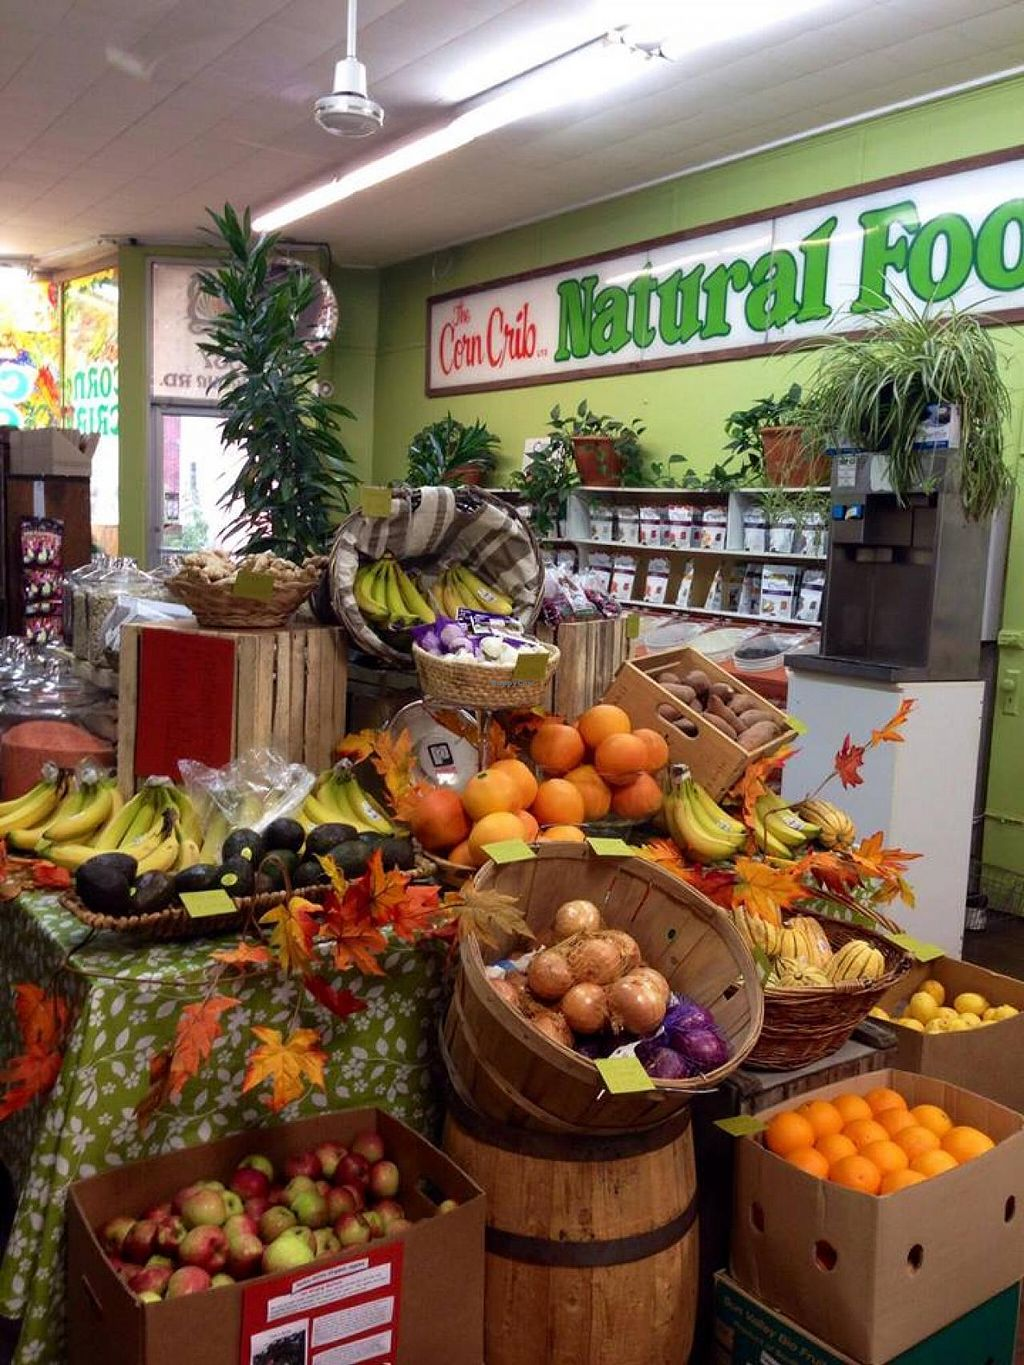 """Photo of Corn Crib Natural Foods  by <a href=""""/members/profile/community"""">community</a> <br/>Corn Crib Natural Foods <br/> February 17, 2014  - <a href='/contact/abuse/image/3438/64473'>Report</a>"""